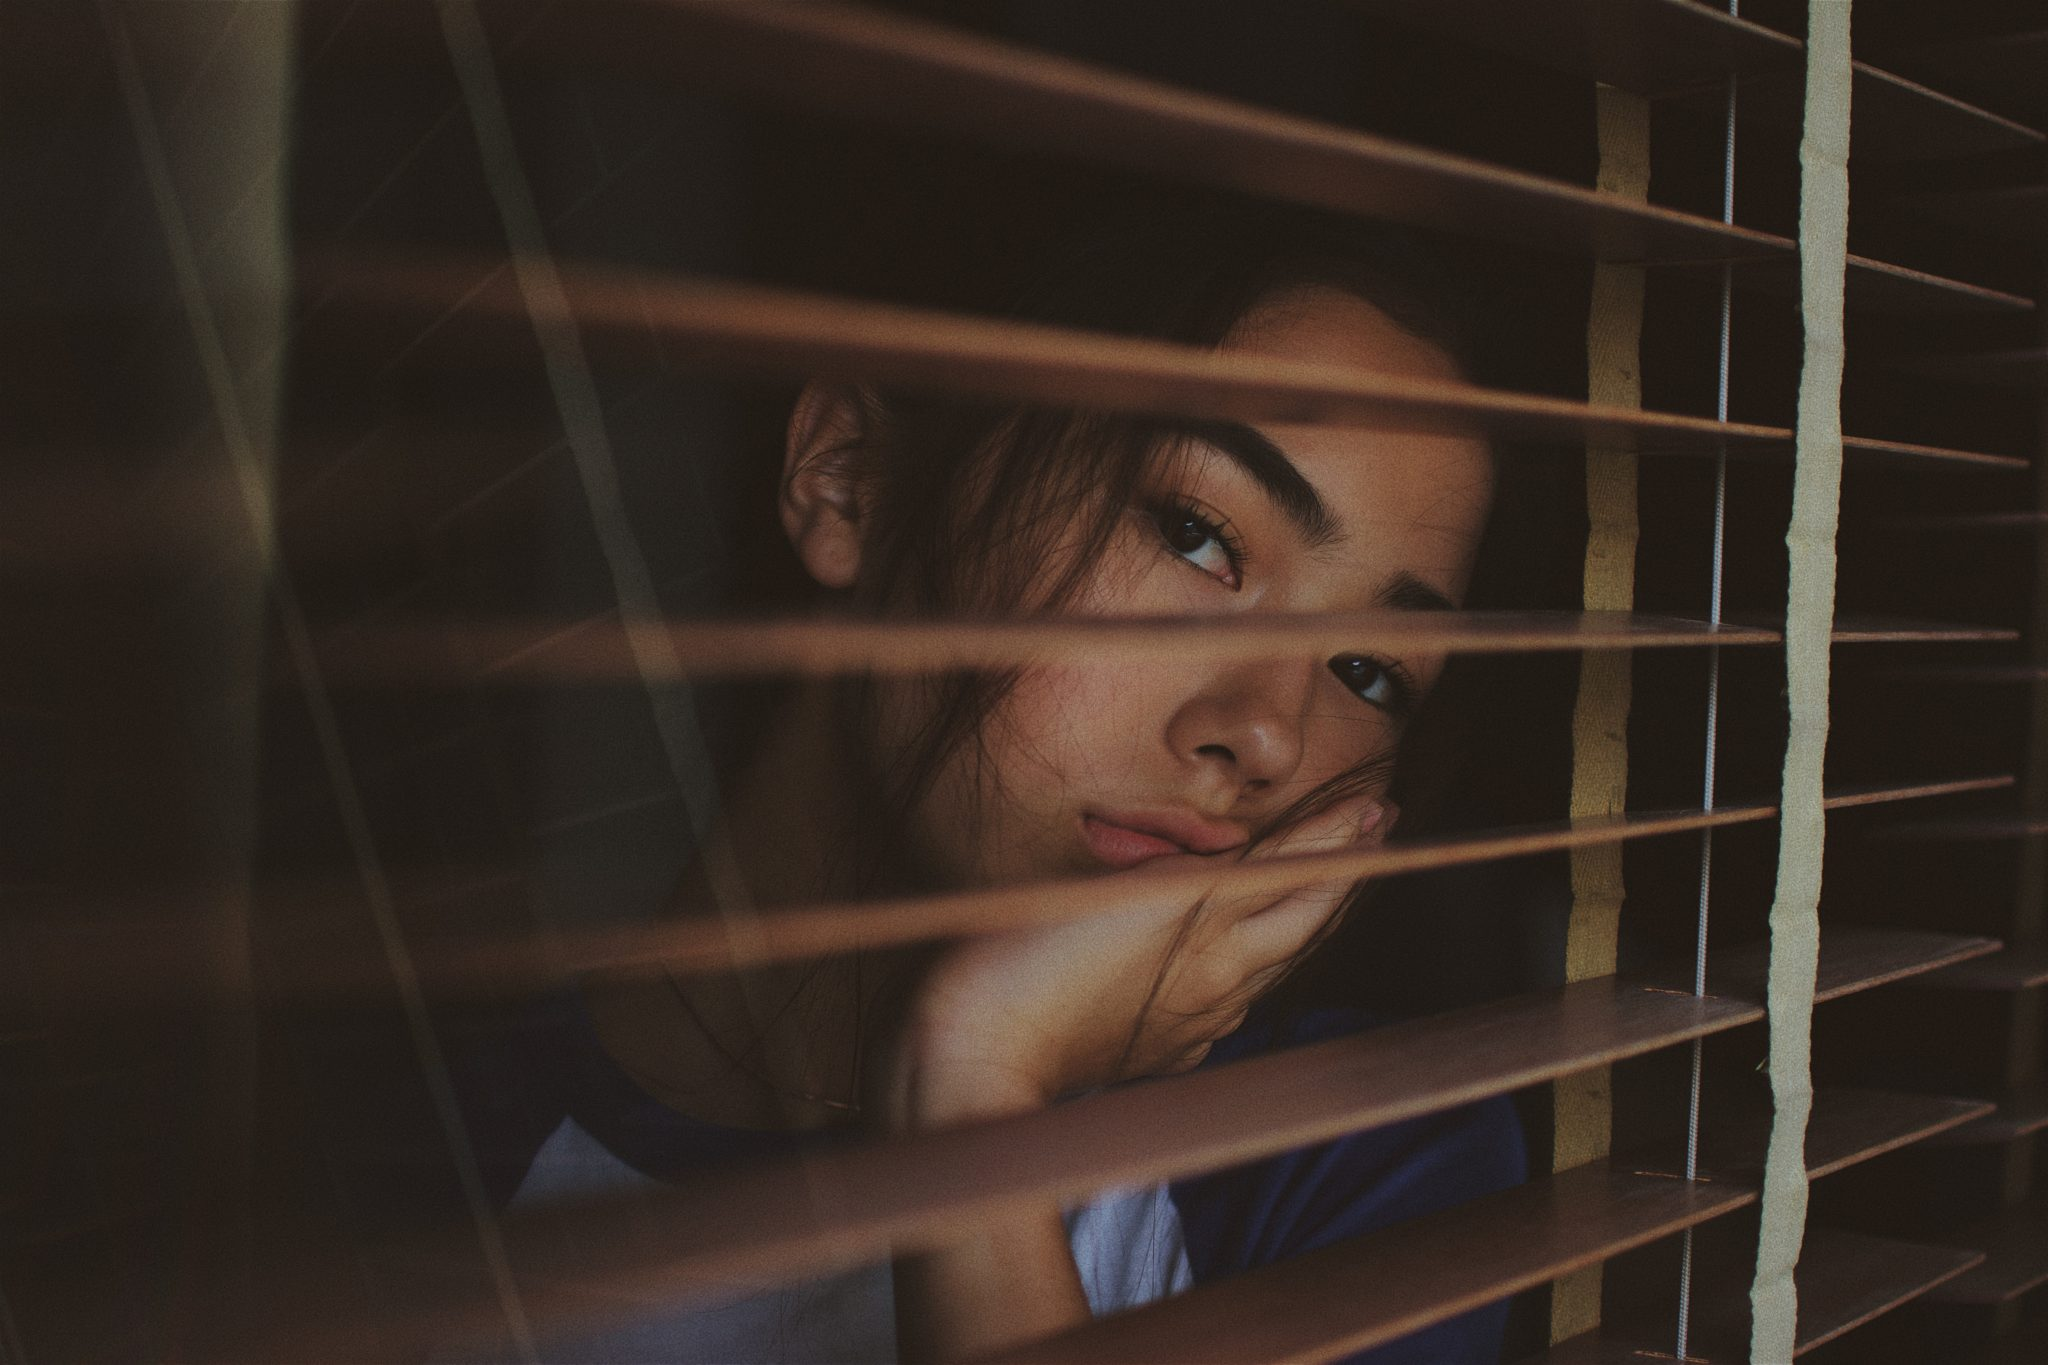 woman looking out the window during coronavirus isolation